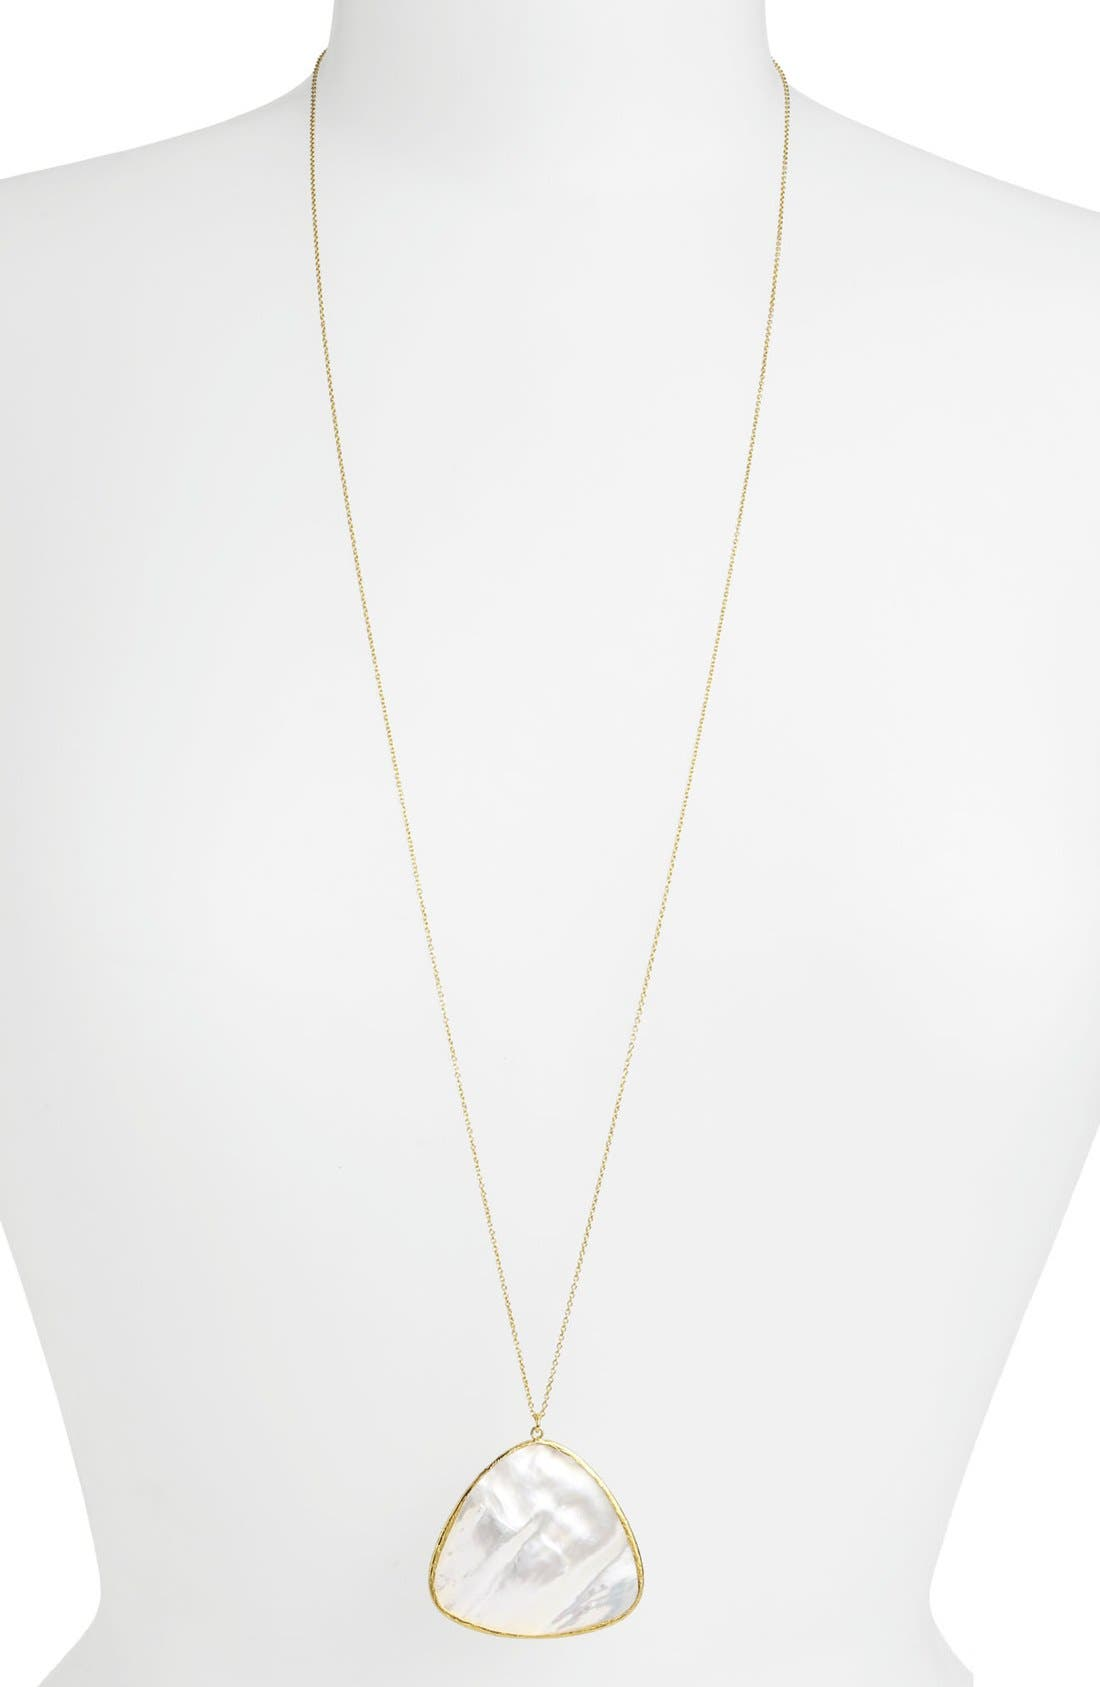 Alternate Image 1 Selected - Argento Vivo Long Triangular Pendant Necklace